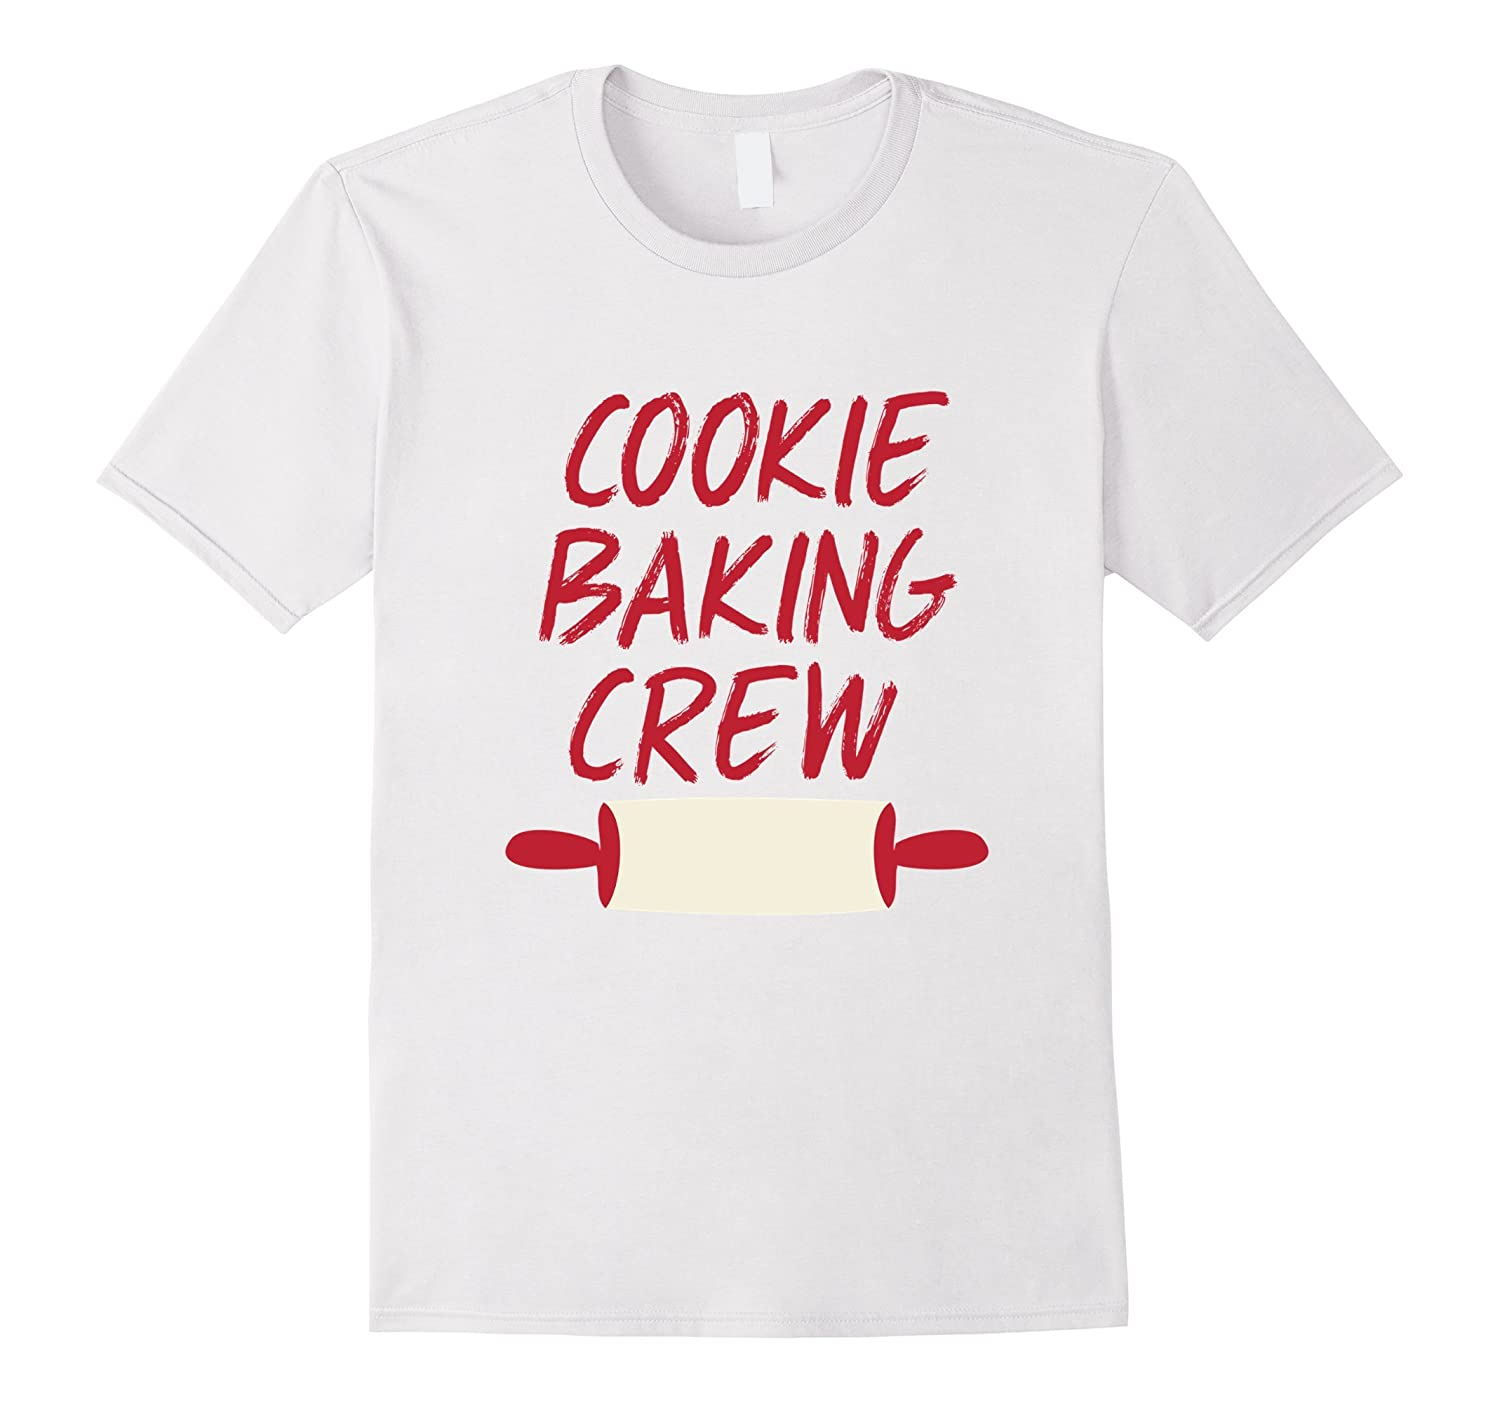 Kids Christmas Outfit Cookie Baking Crew Shirt Holiday-Rose